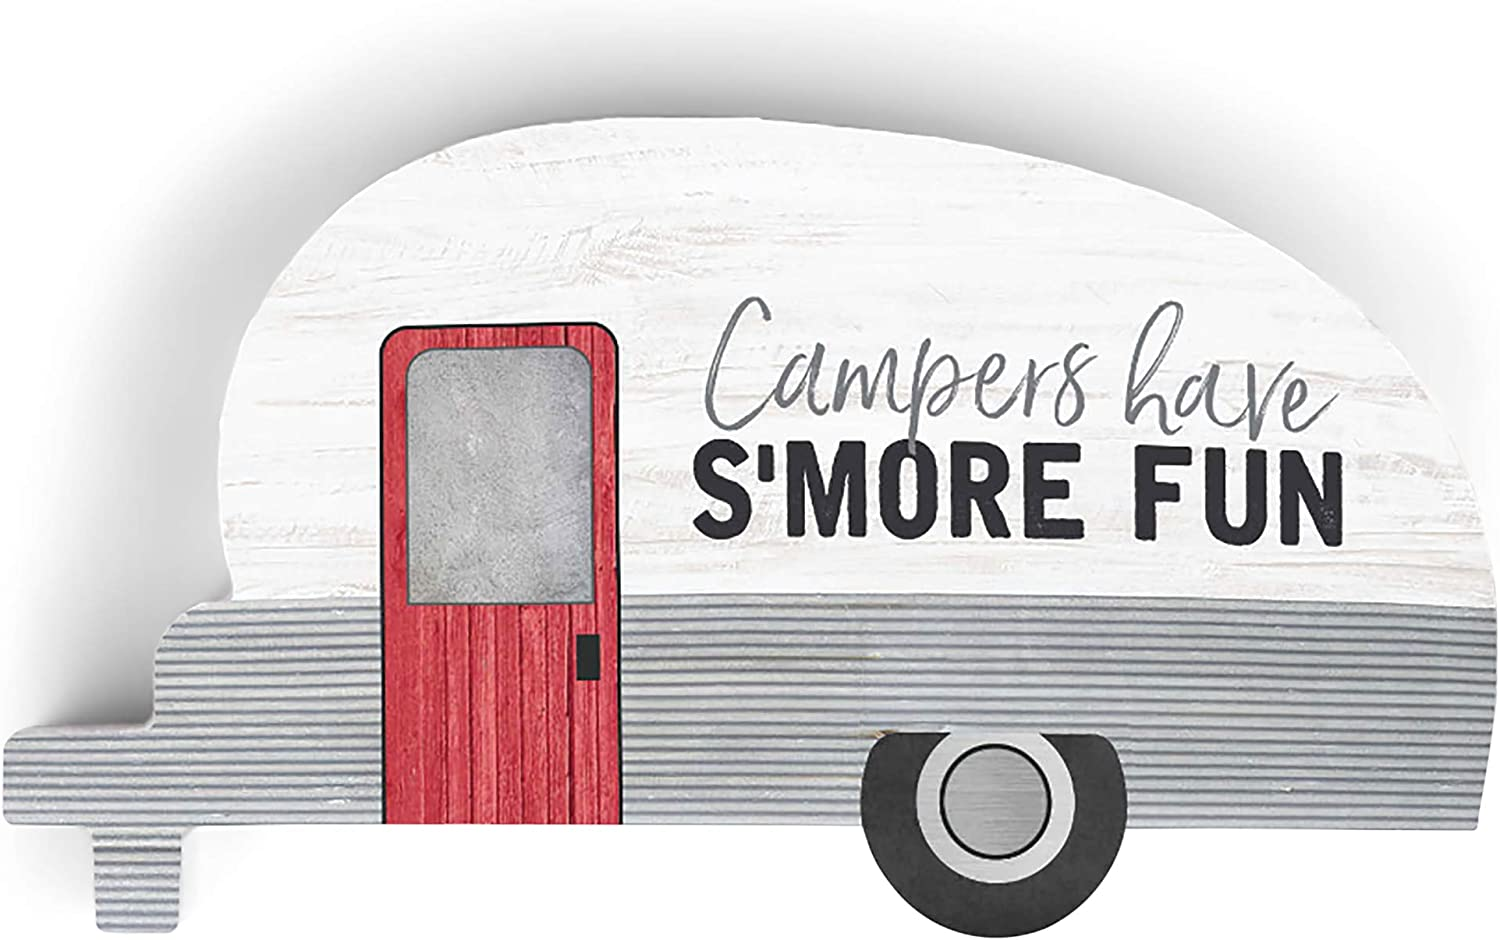 P. Graham Dunn Campers Have S'More Fun Trailer Grey 5 x 2.75 Pine Wood Small Tabletop Plaque